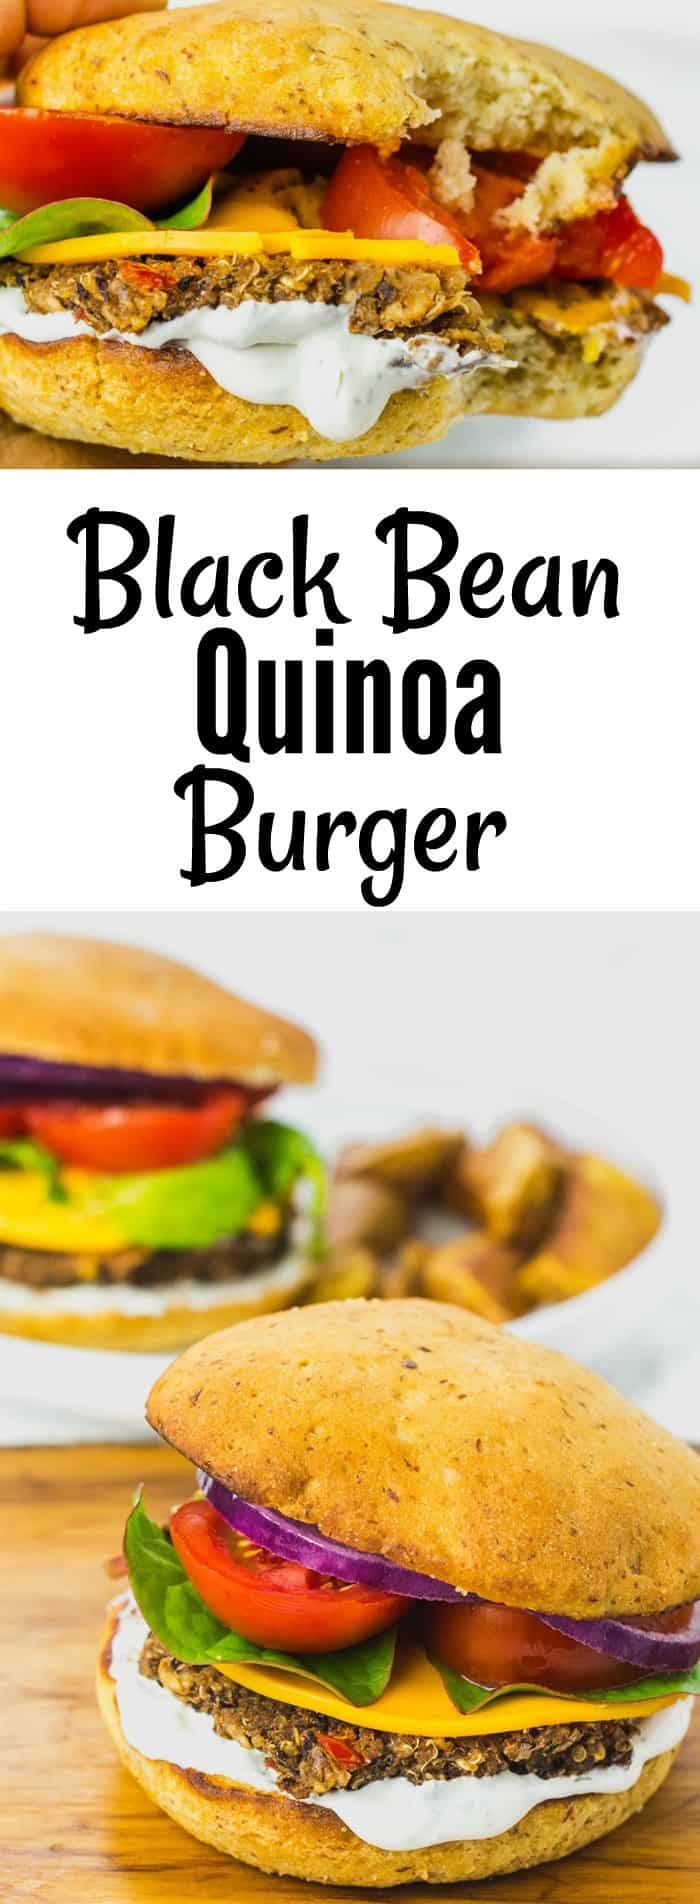 Black Bean Quinoa Burger pin